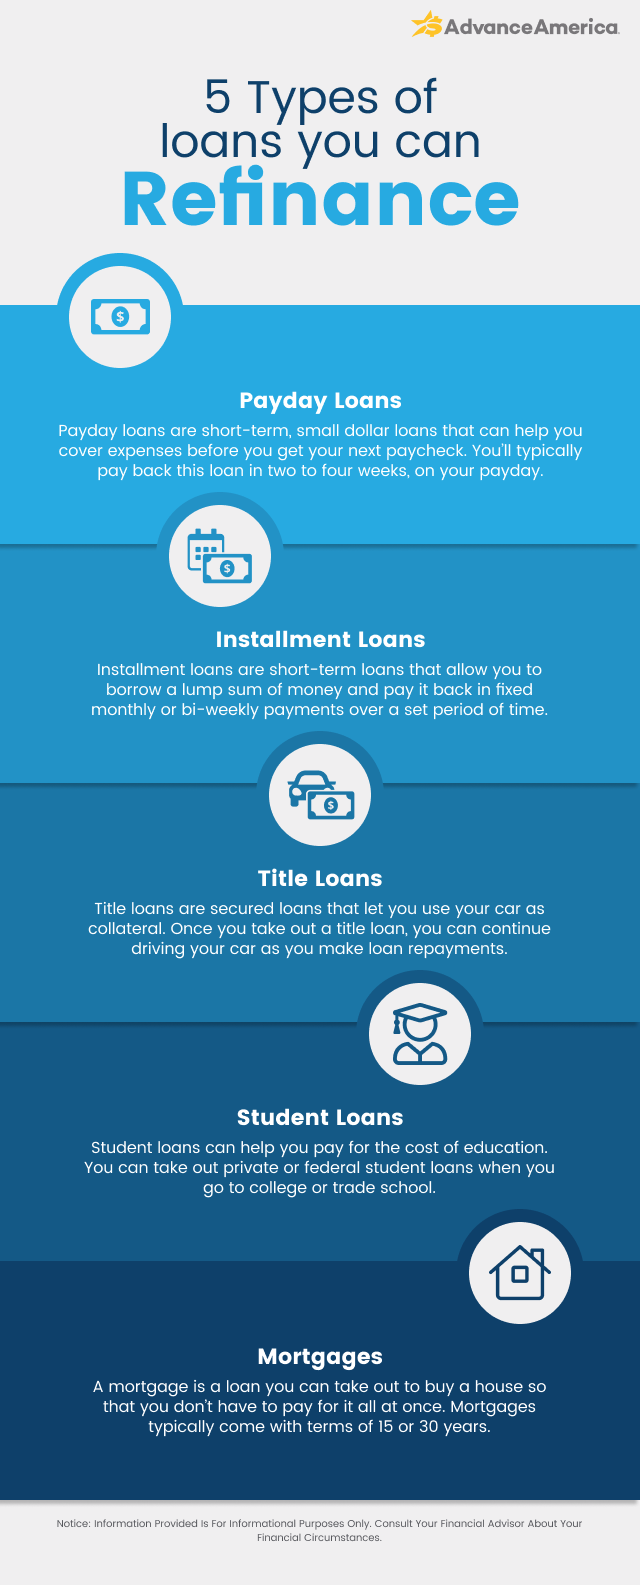 5 types of loans you can refinance